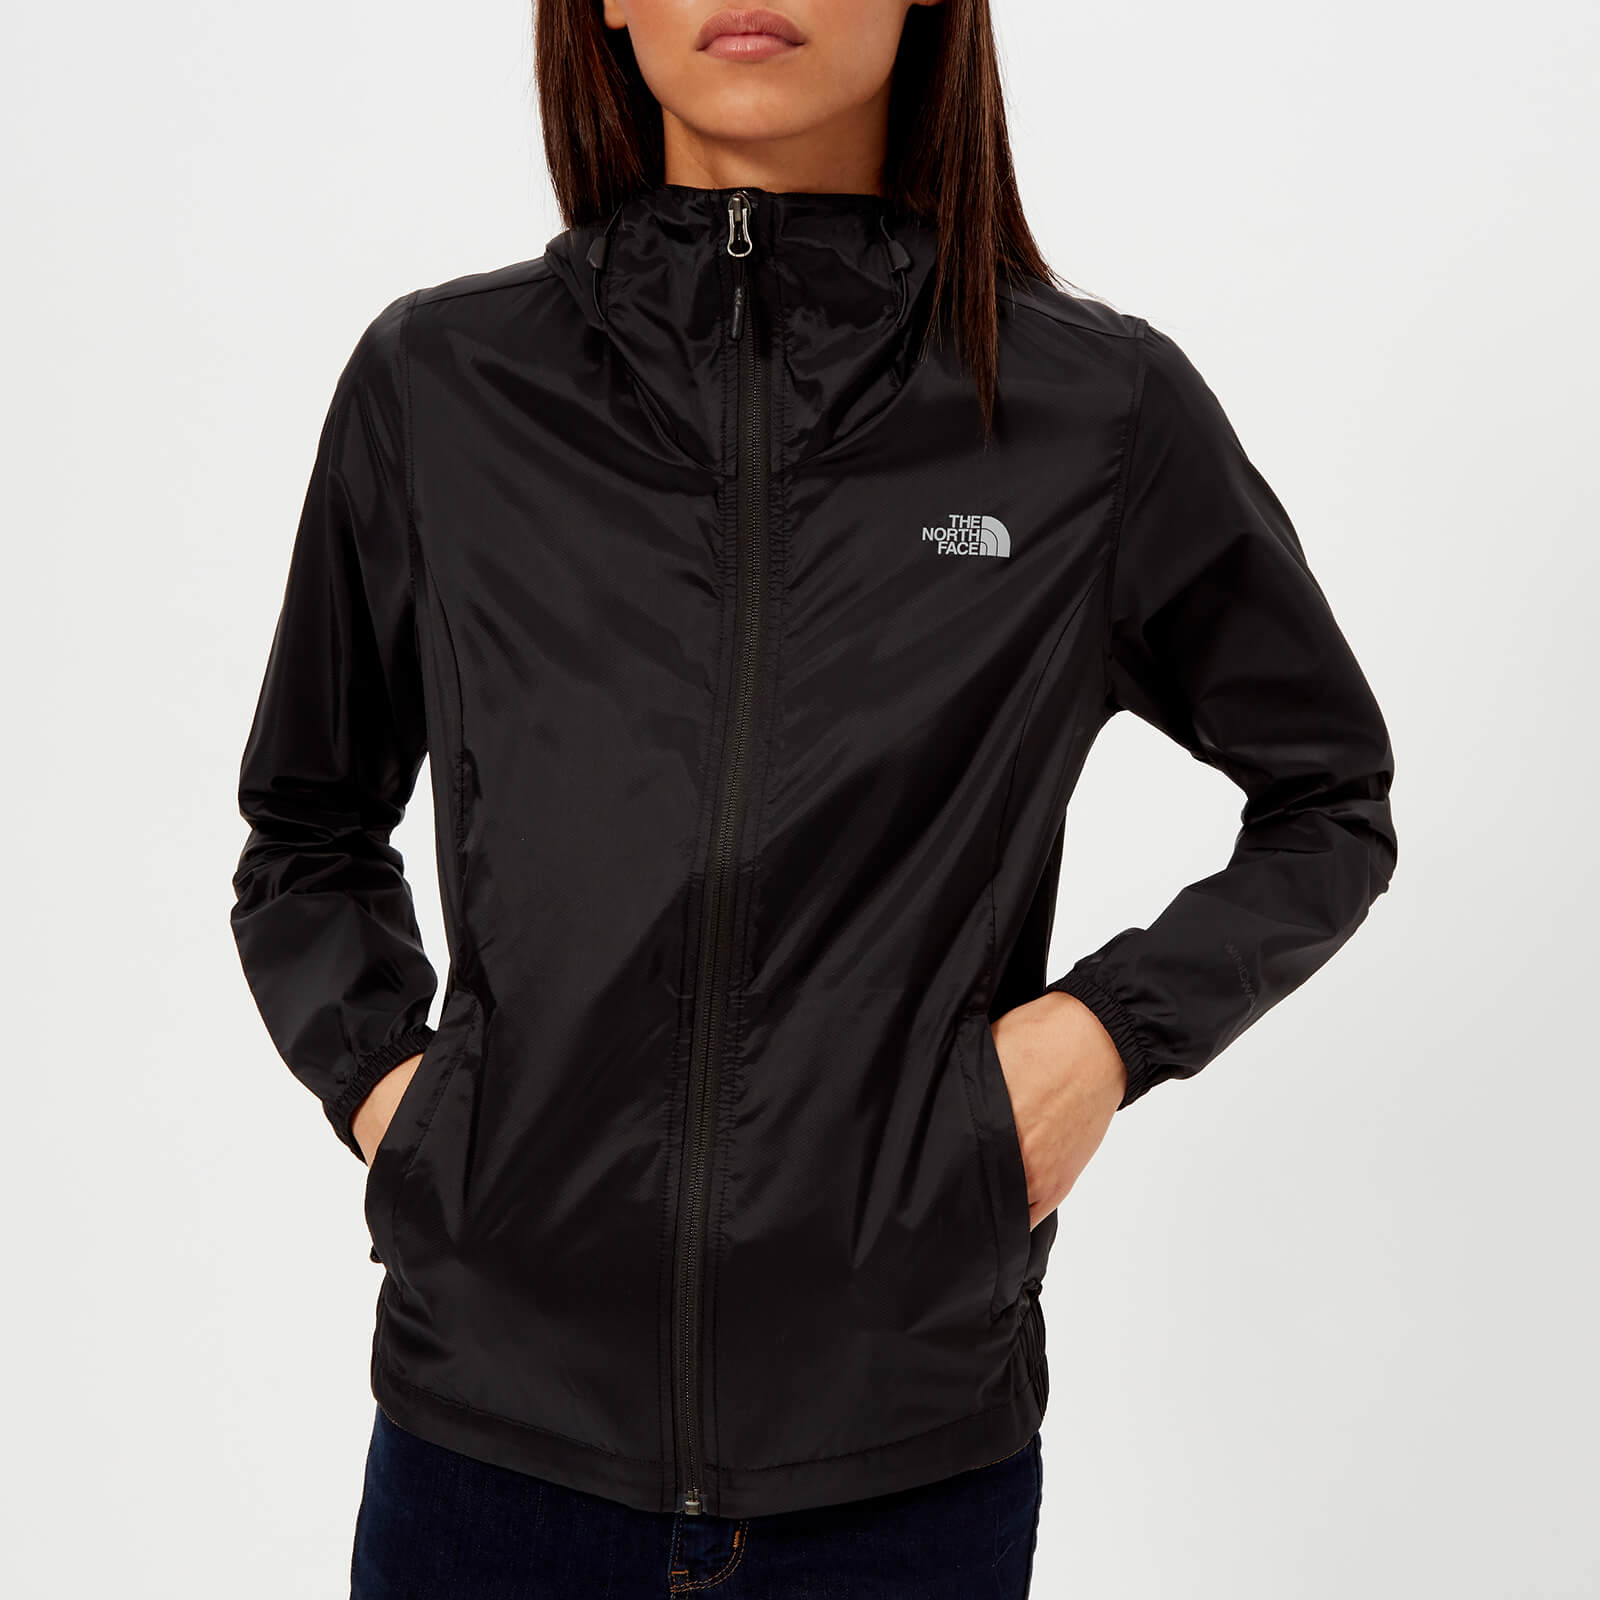 a80a9f3bb The North Face Women's Cyclone 2 Hoody - TNF Black